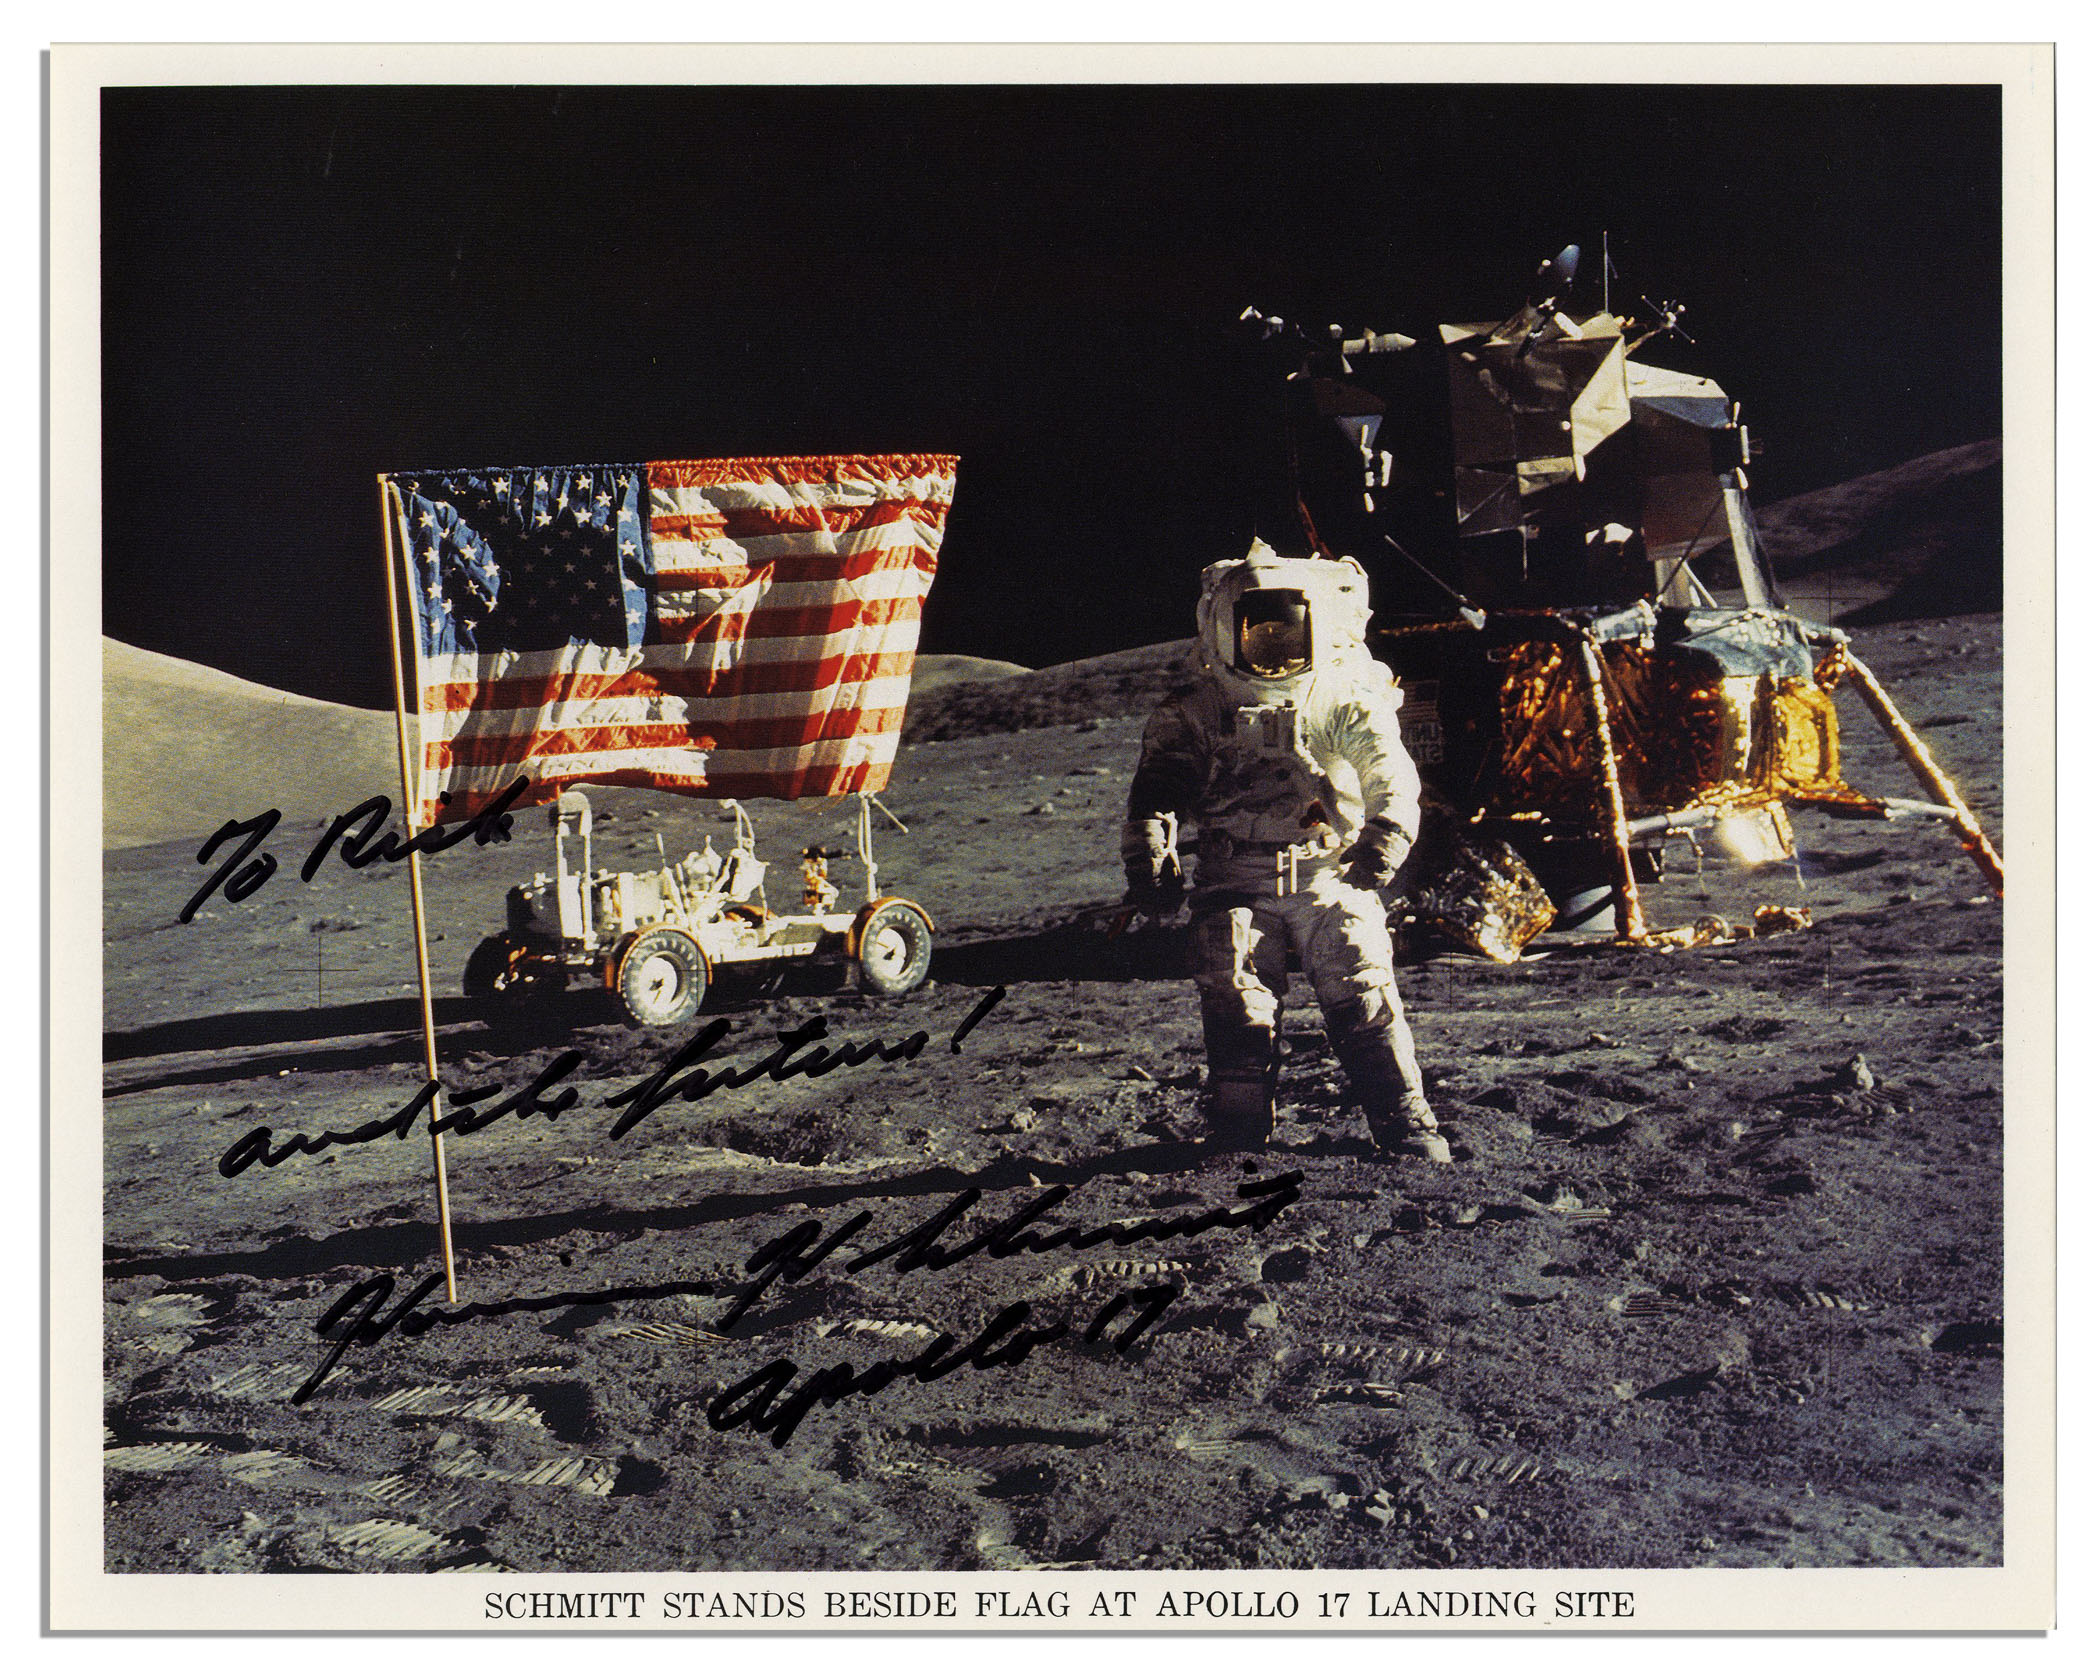 Lot Detail - Signed Lunar Photo of Apollo 17 Astronaut ...